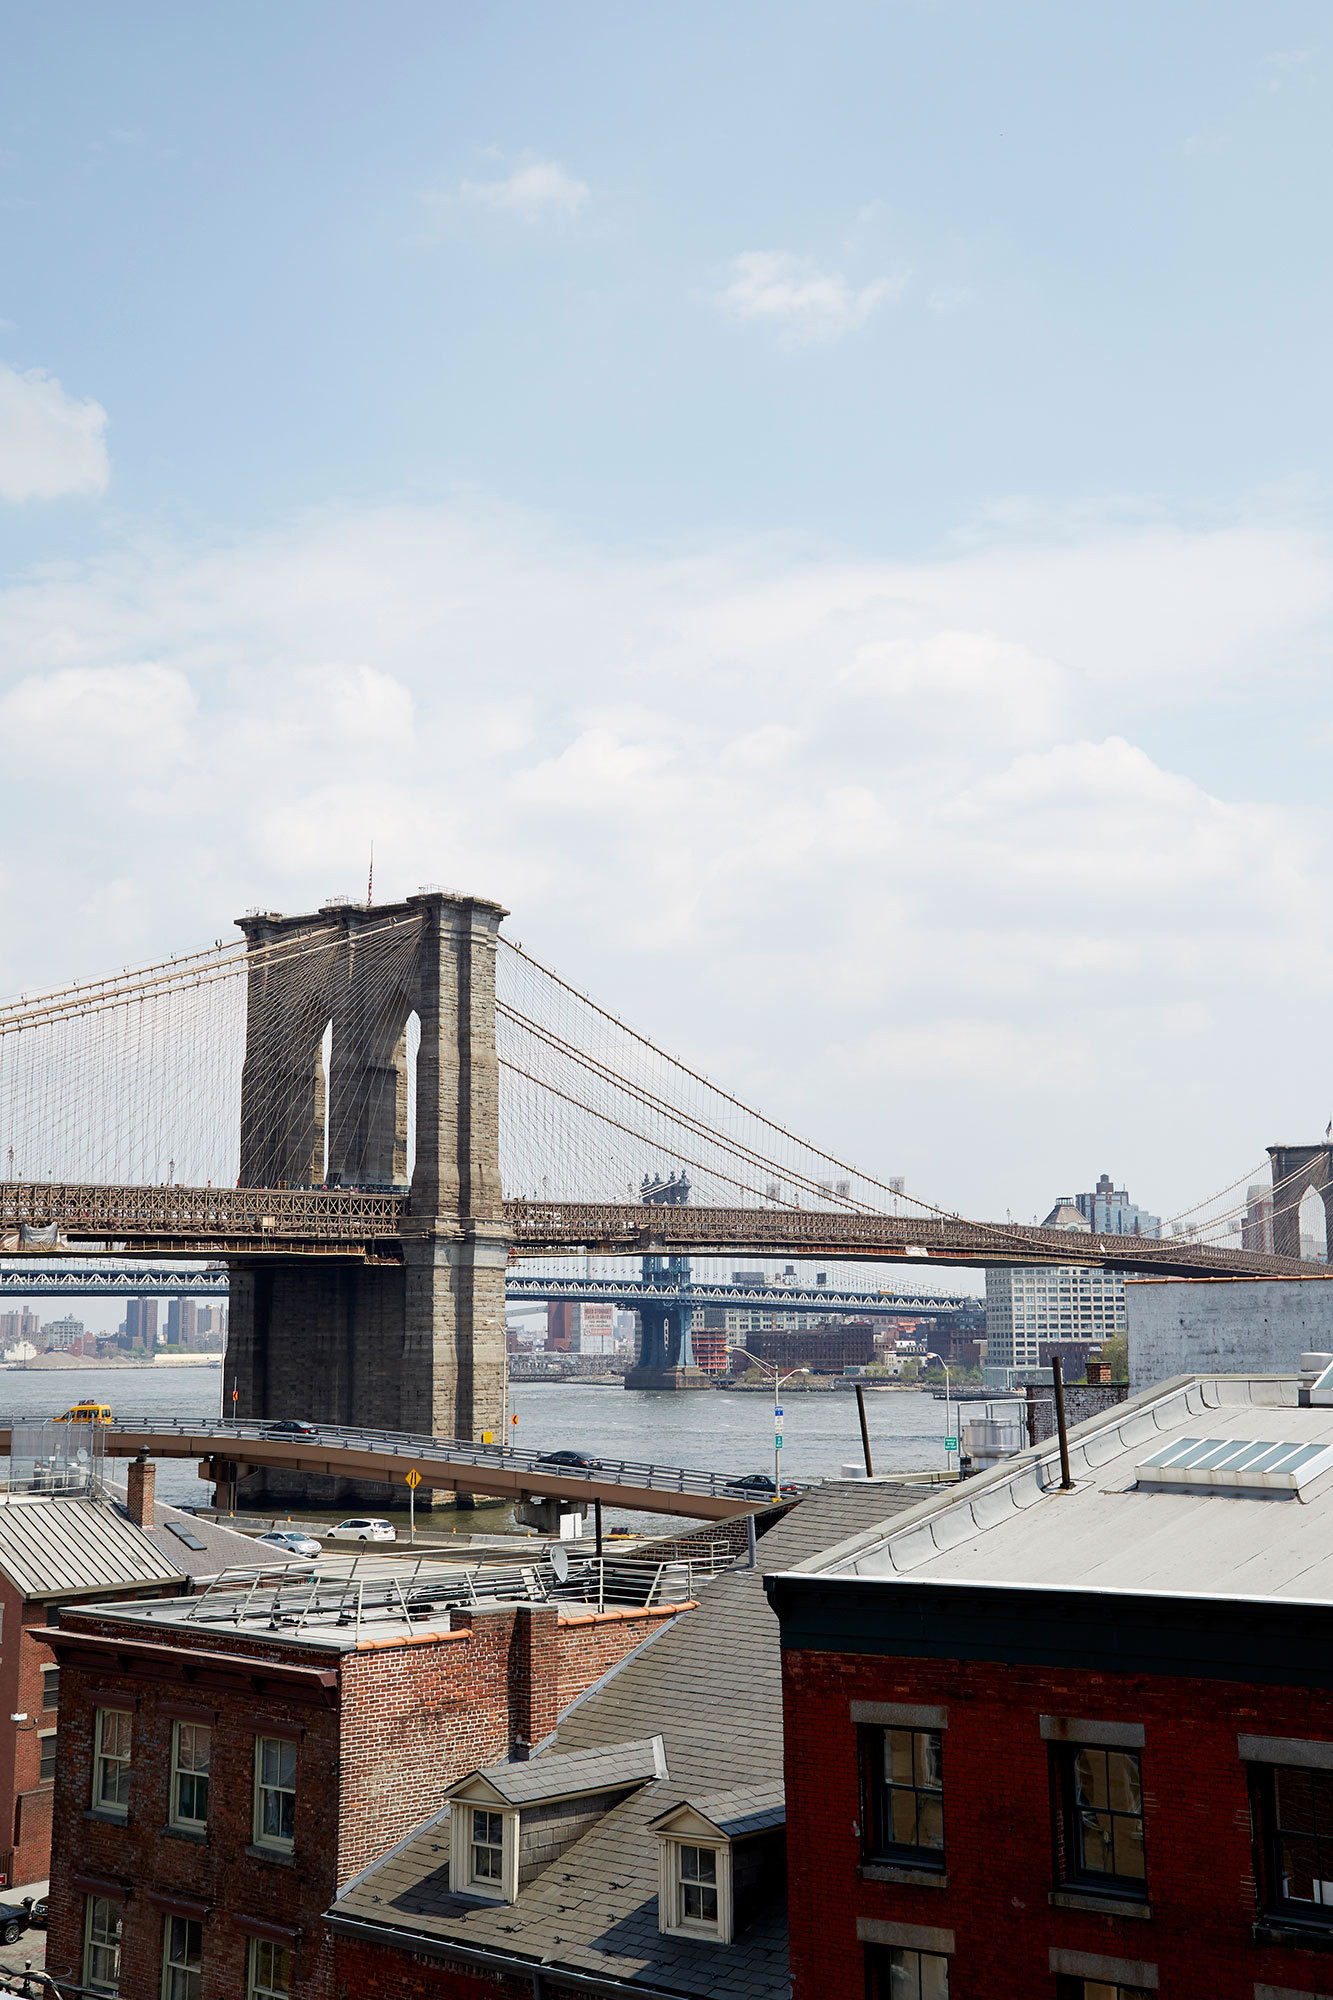 A view of the Brooklyn Bridge from the South Street Seaport historic district.